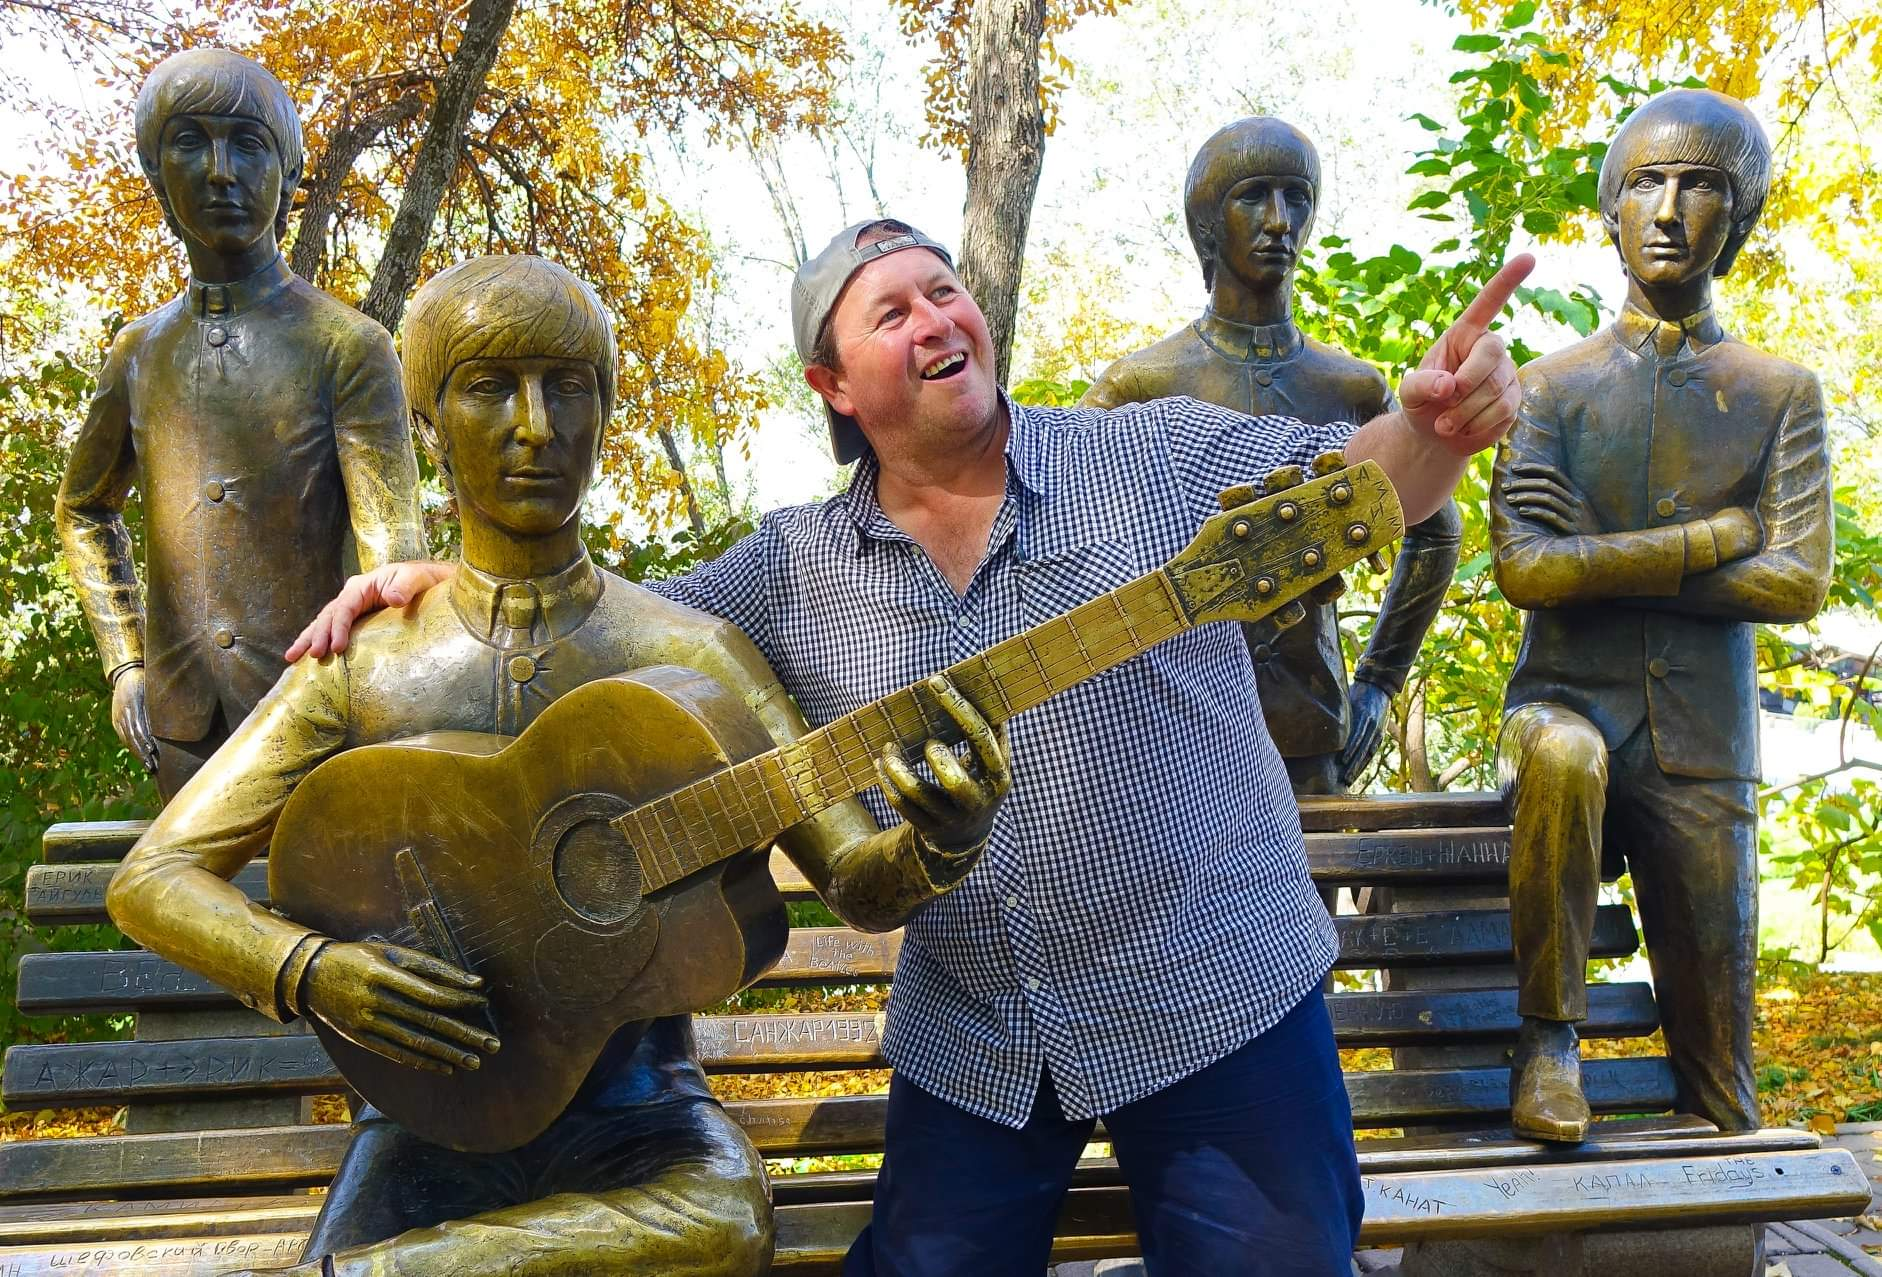 Almaty, Kazakhstan. Just hanging out with this unlikely statue of the Beatles